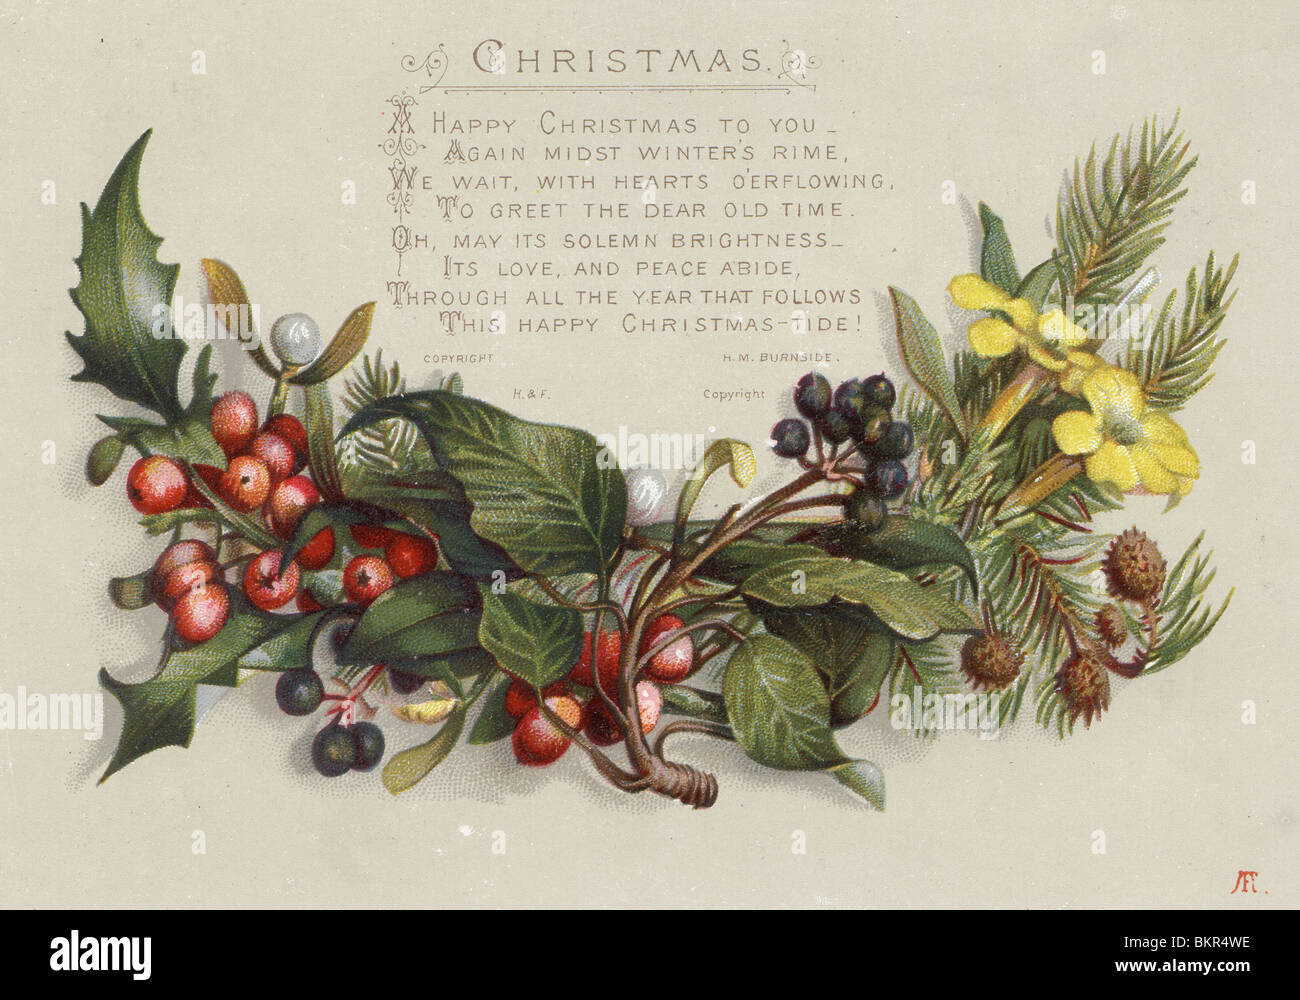 Wreath from old christmas cards - Stock Photo Victorian Christmas Card